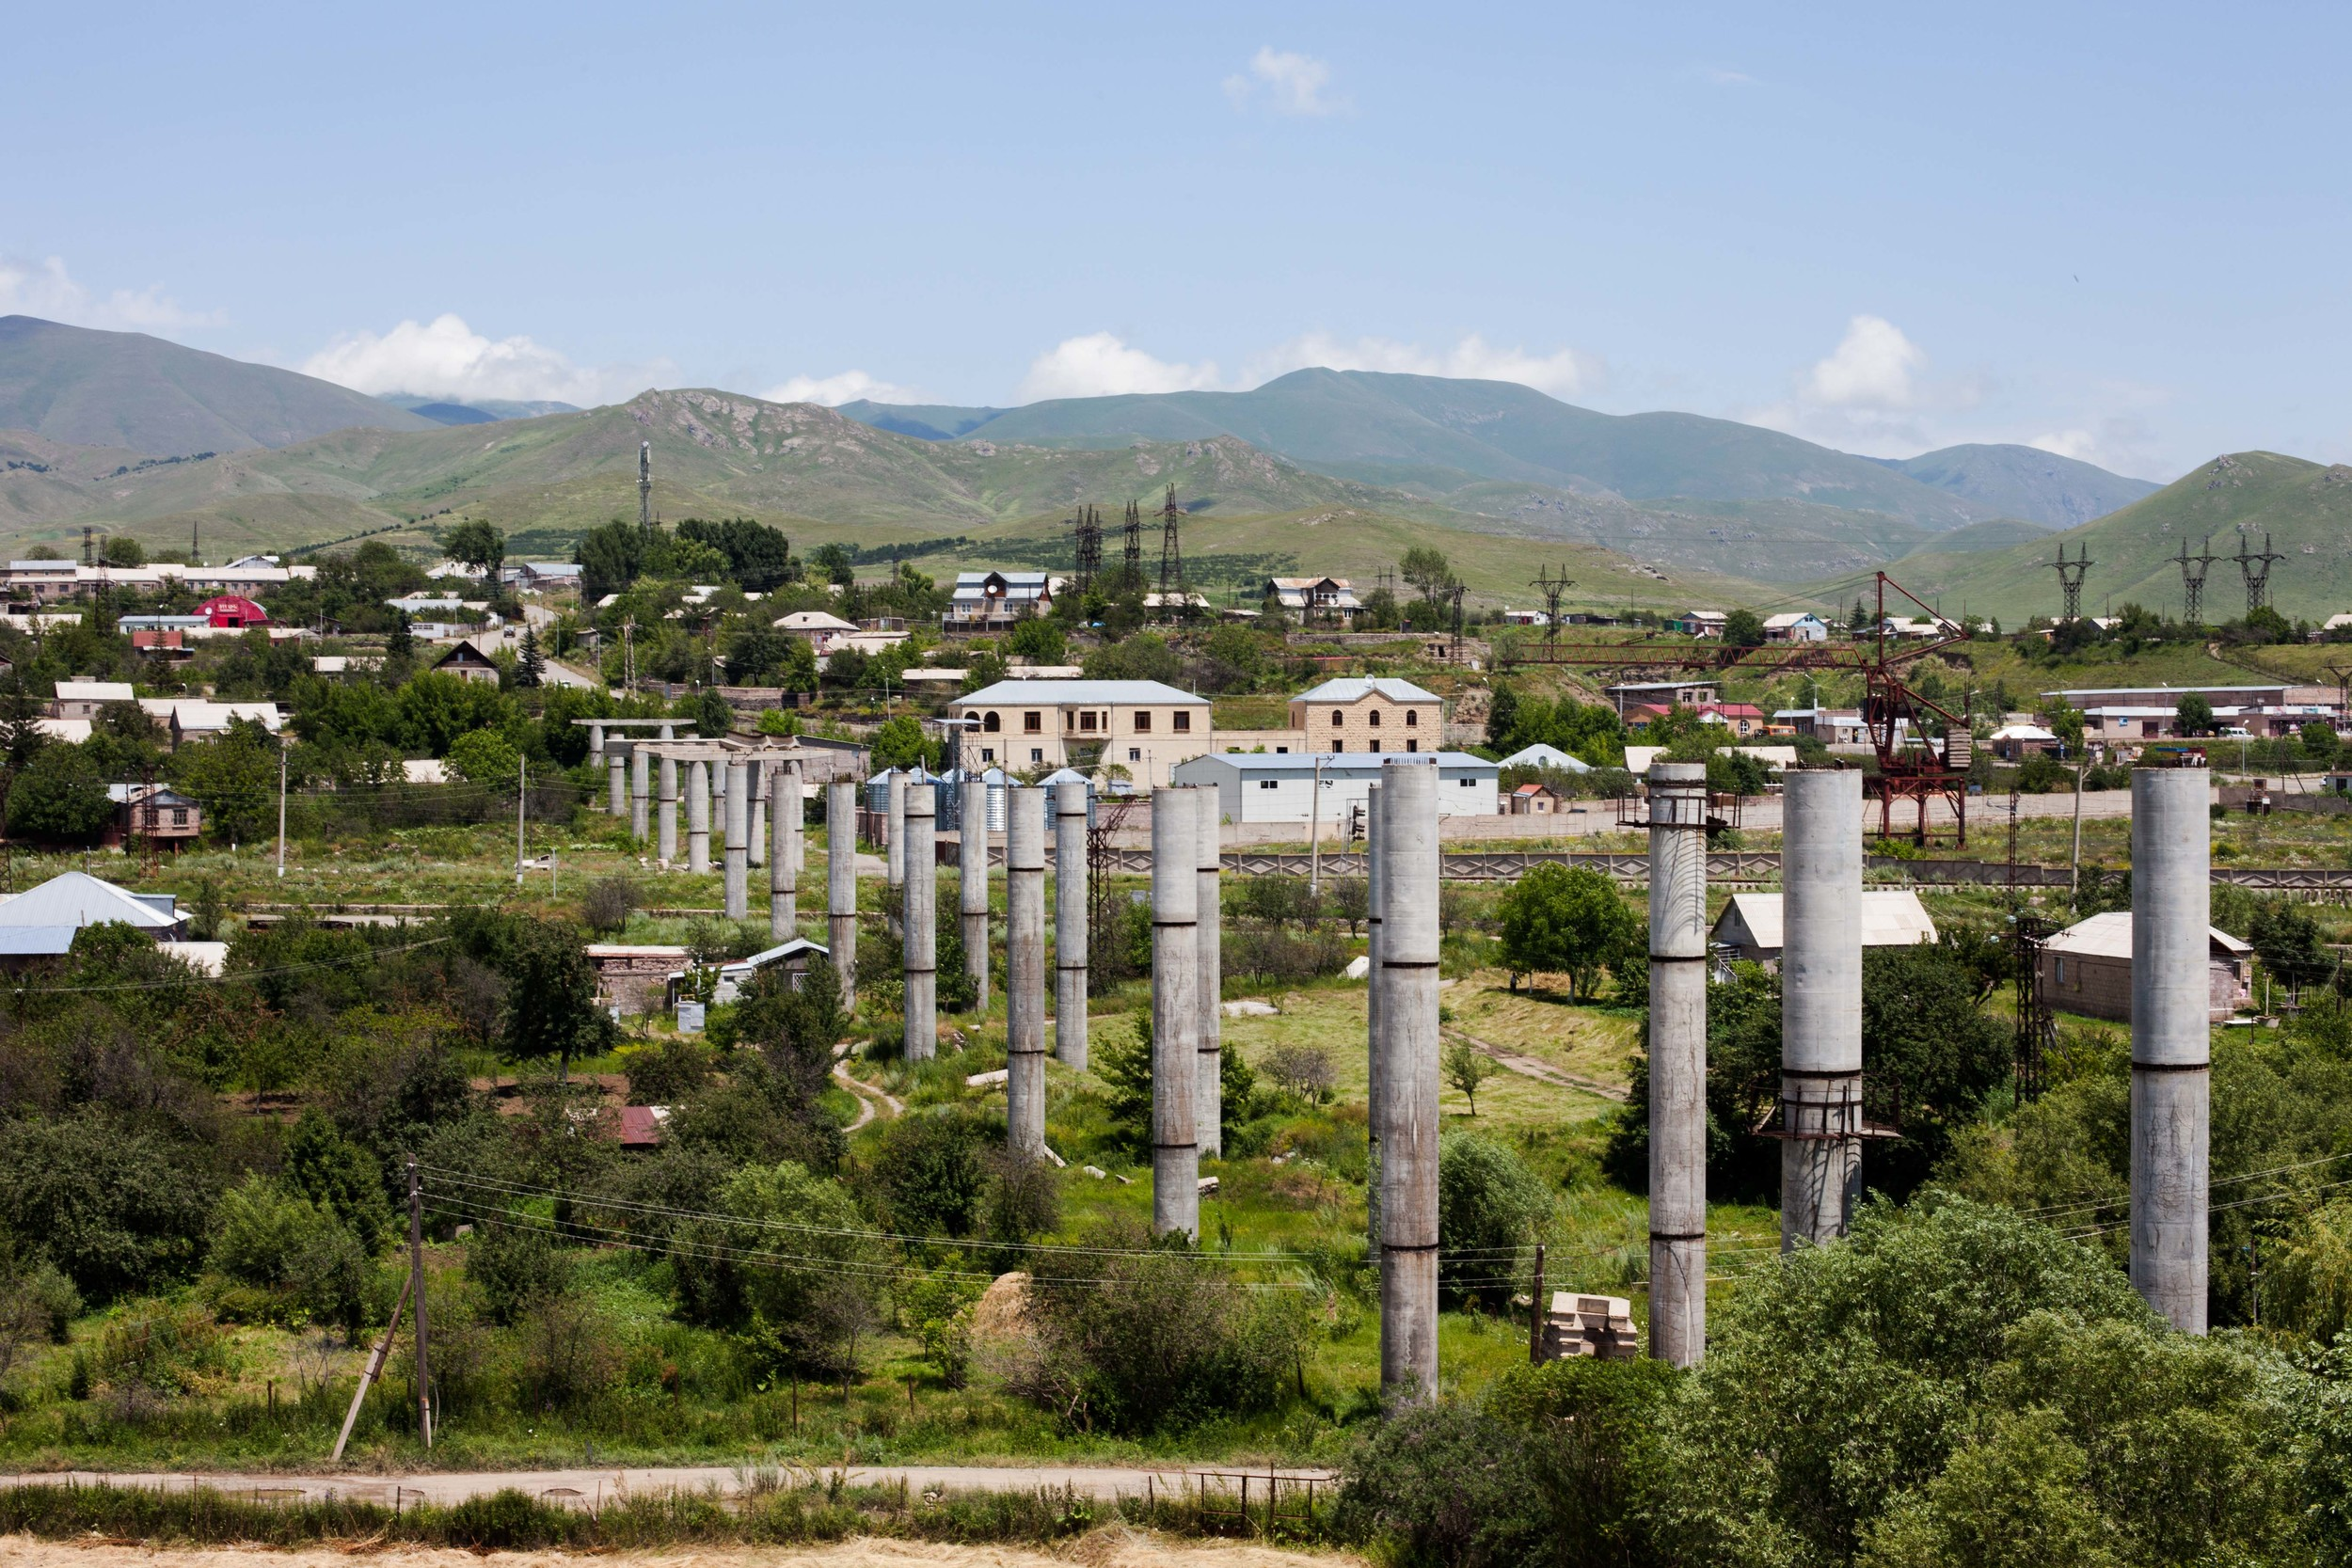 An unfinished bridge runs through the landscape of Spitak, a reminder of their time under Soviet rule.